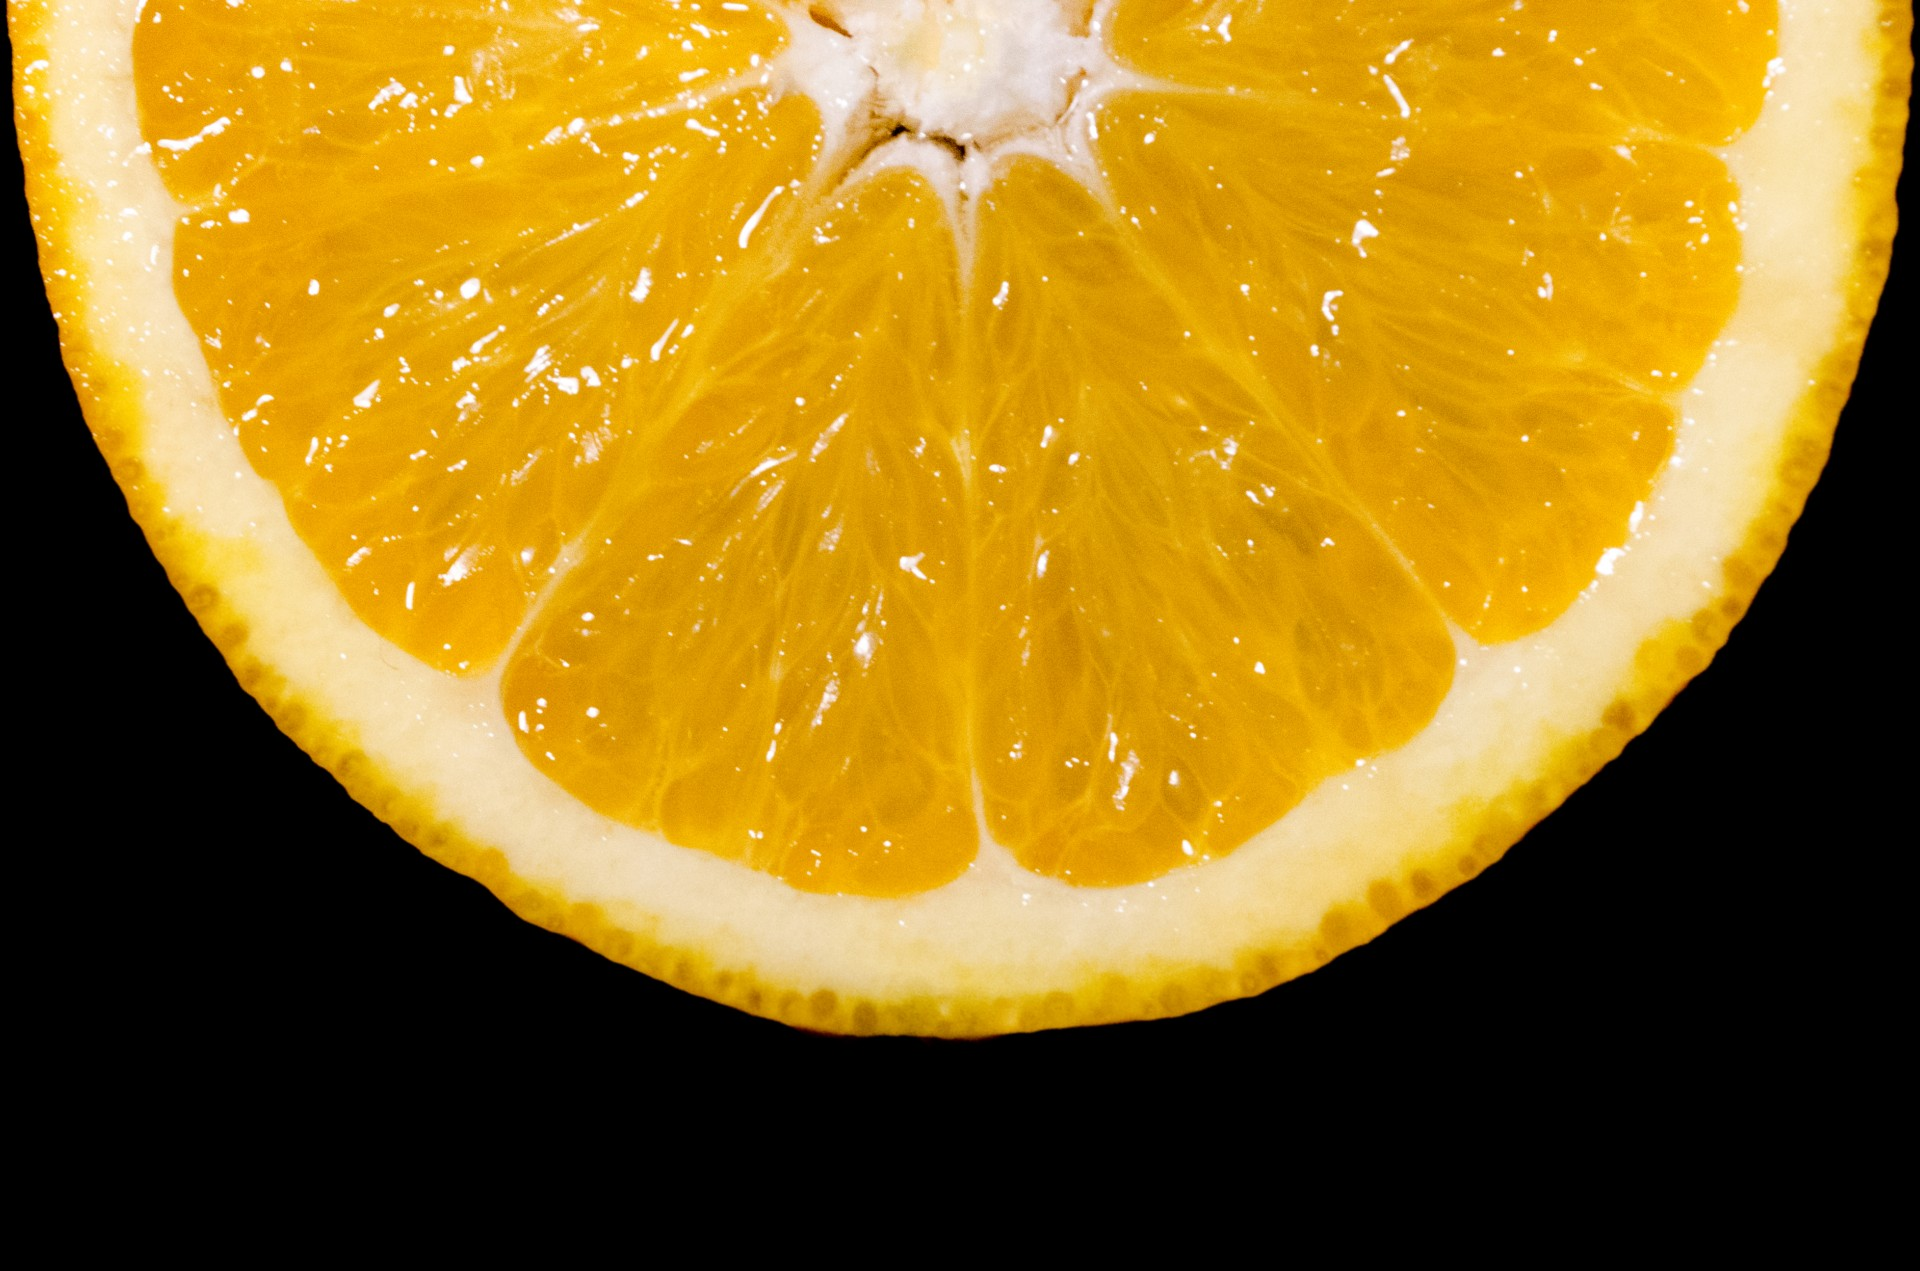 Slice Of Orange Fruit Free Stock Photo - Public Domain Pictures